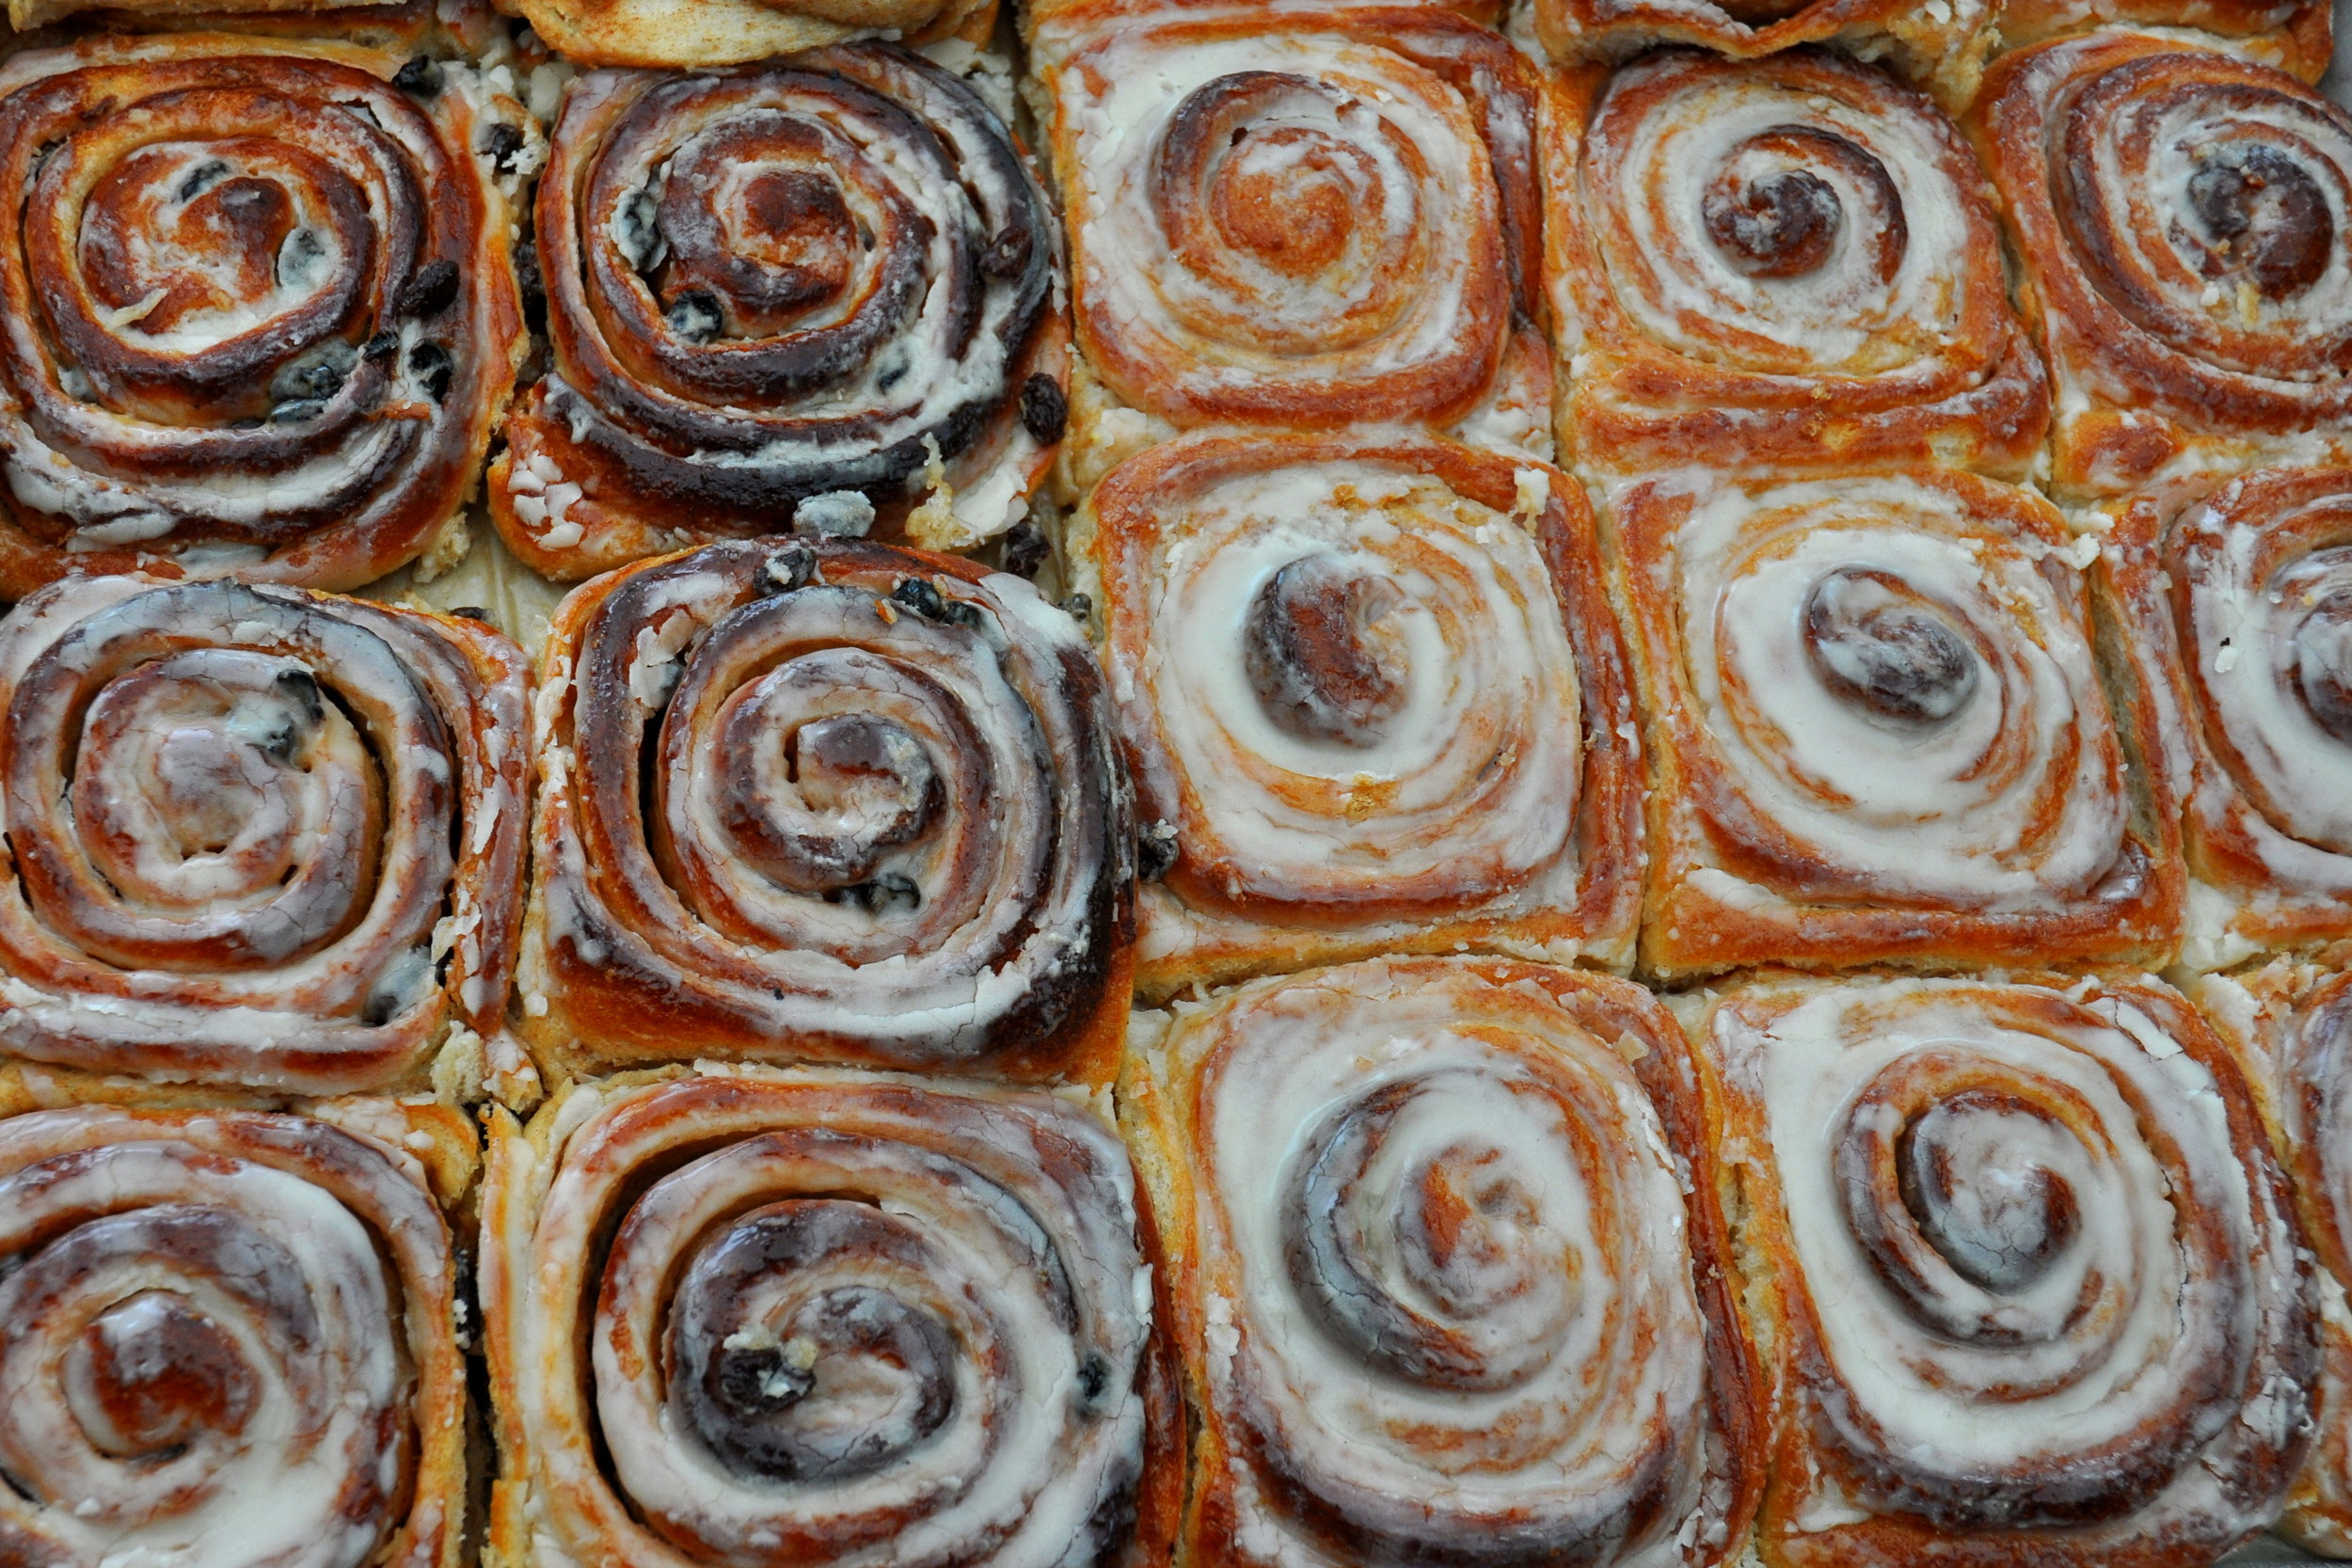 Cinnamon rolls from Tall Grass Bakery. Copyright Zachary D. Lyons.